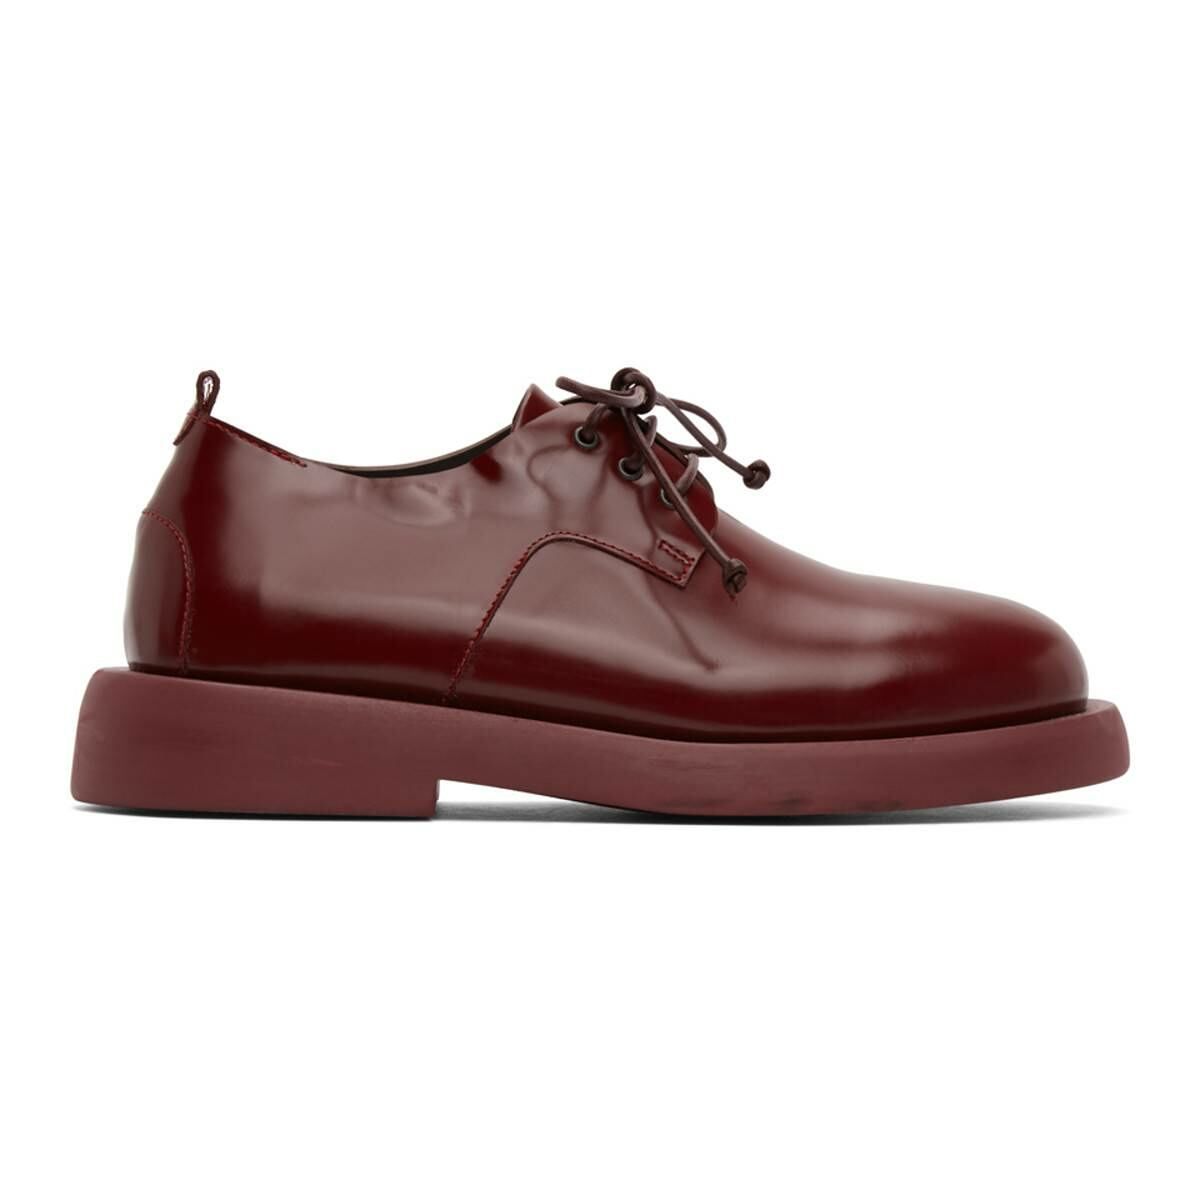 Marsell Red Gommello Derbys Ssense USA MEN Men SHOES Mens FORMAL SHOES